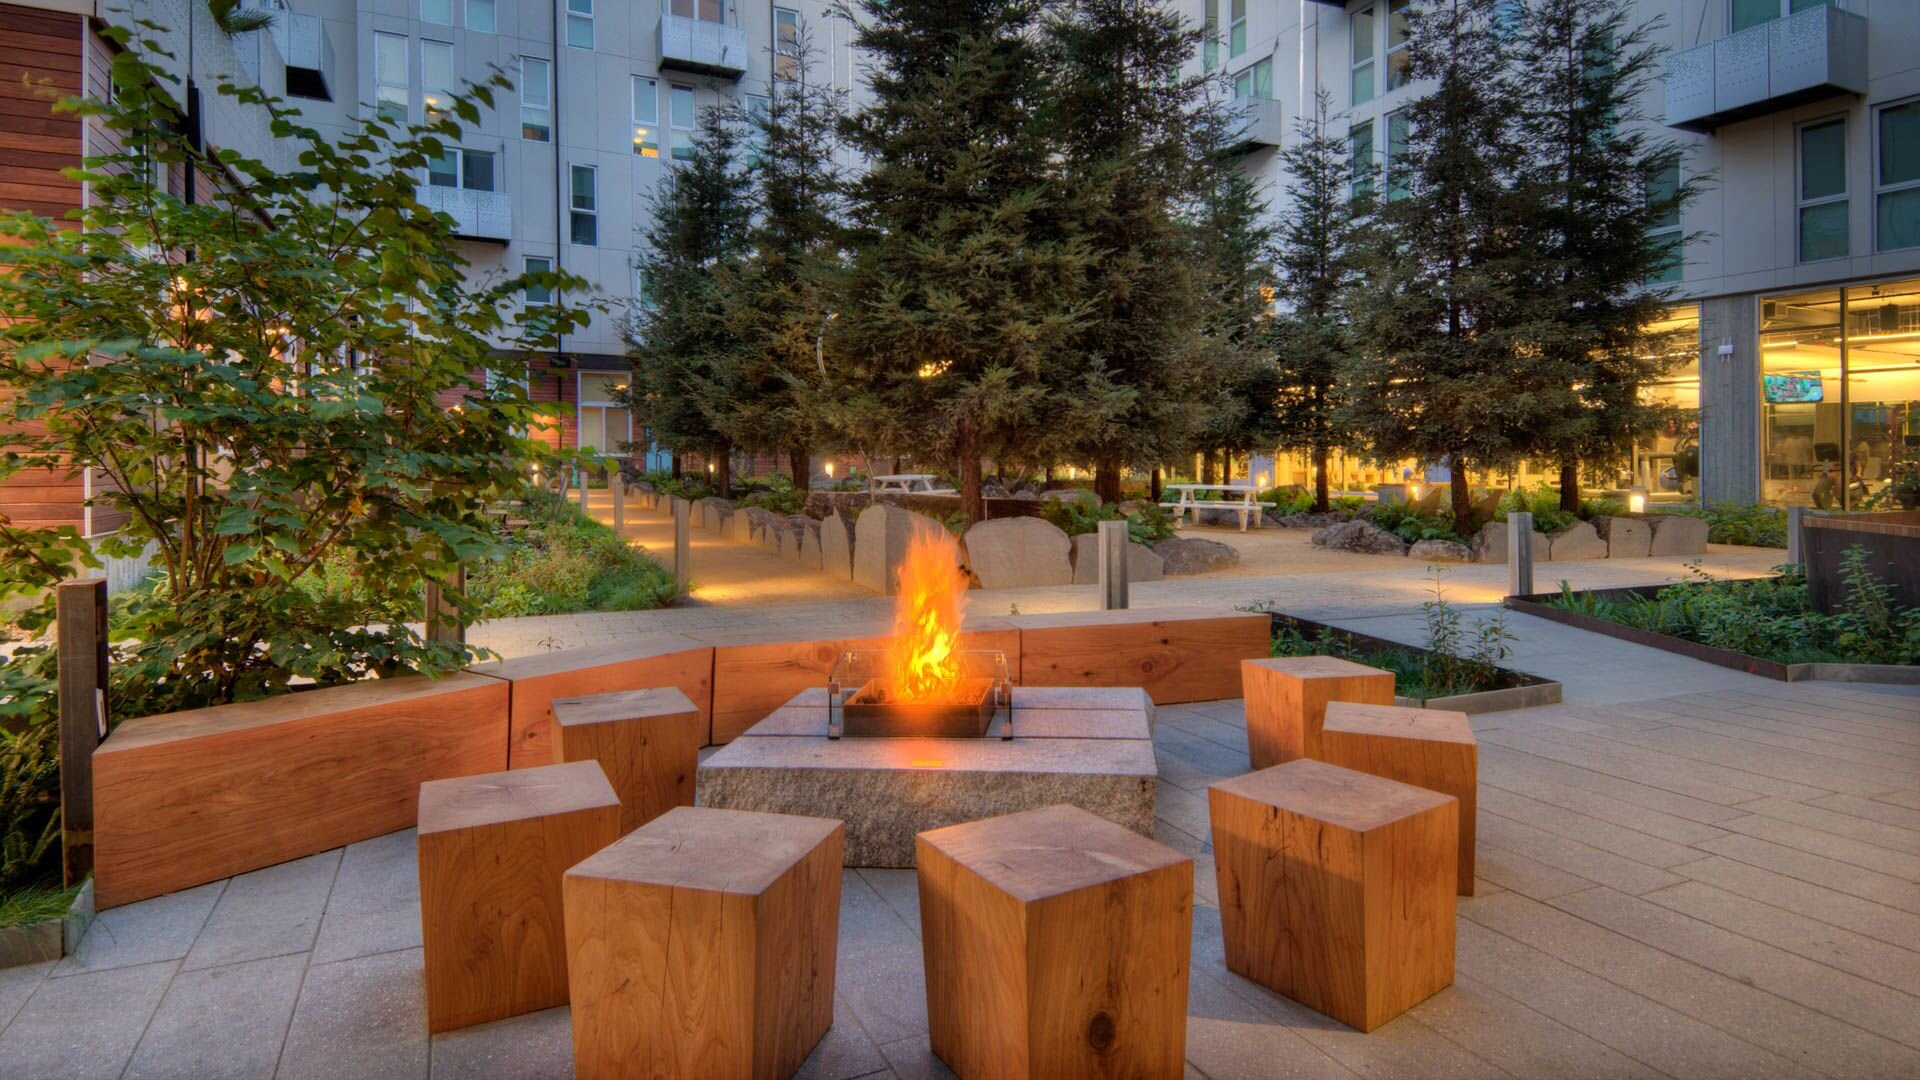 855-brannan-apartments-courtyard.jpg